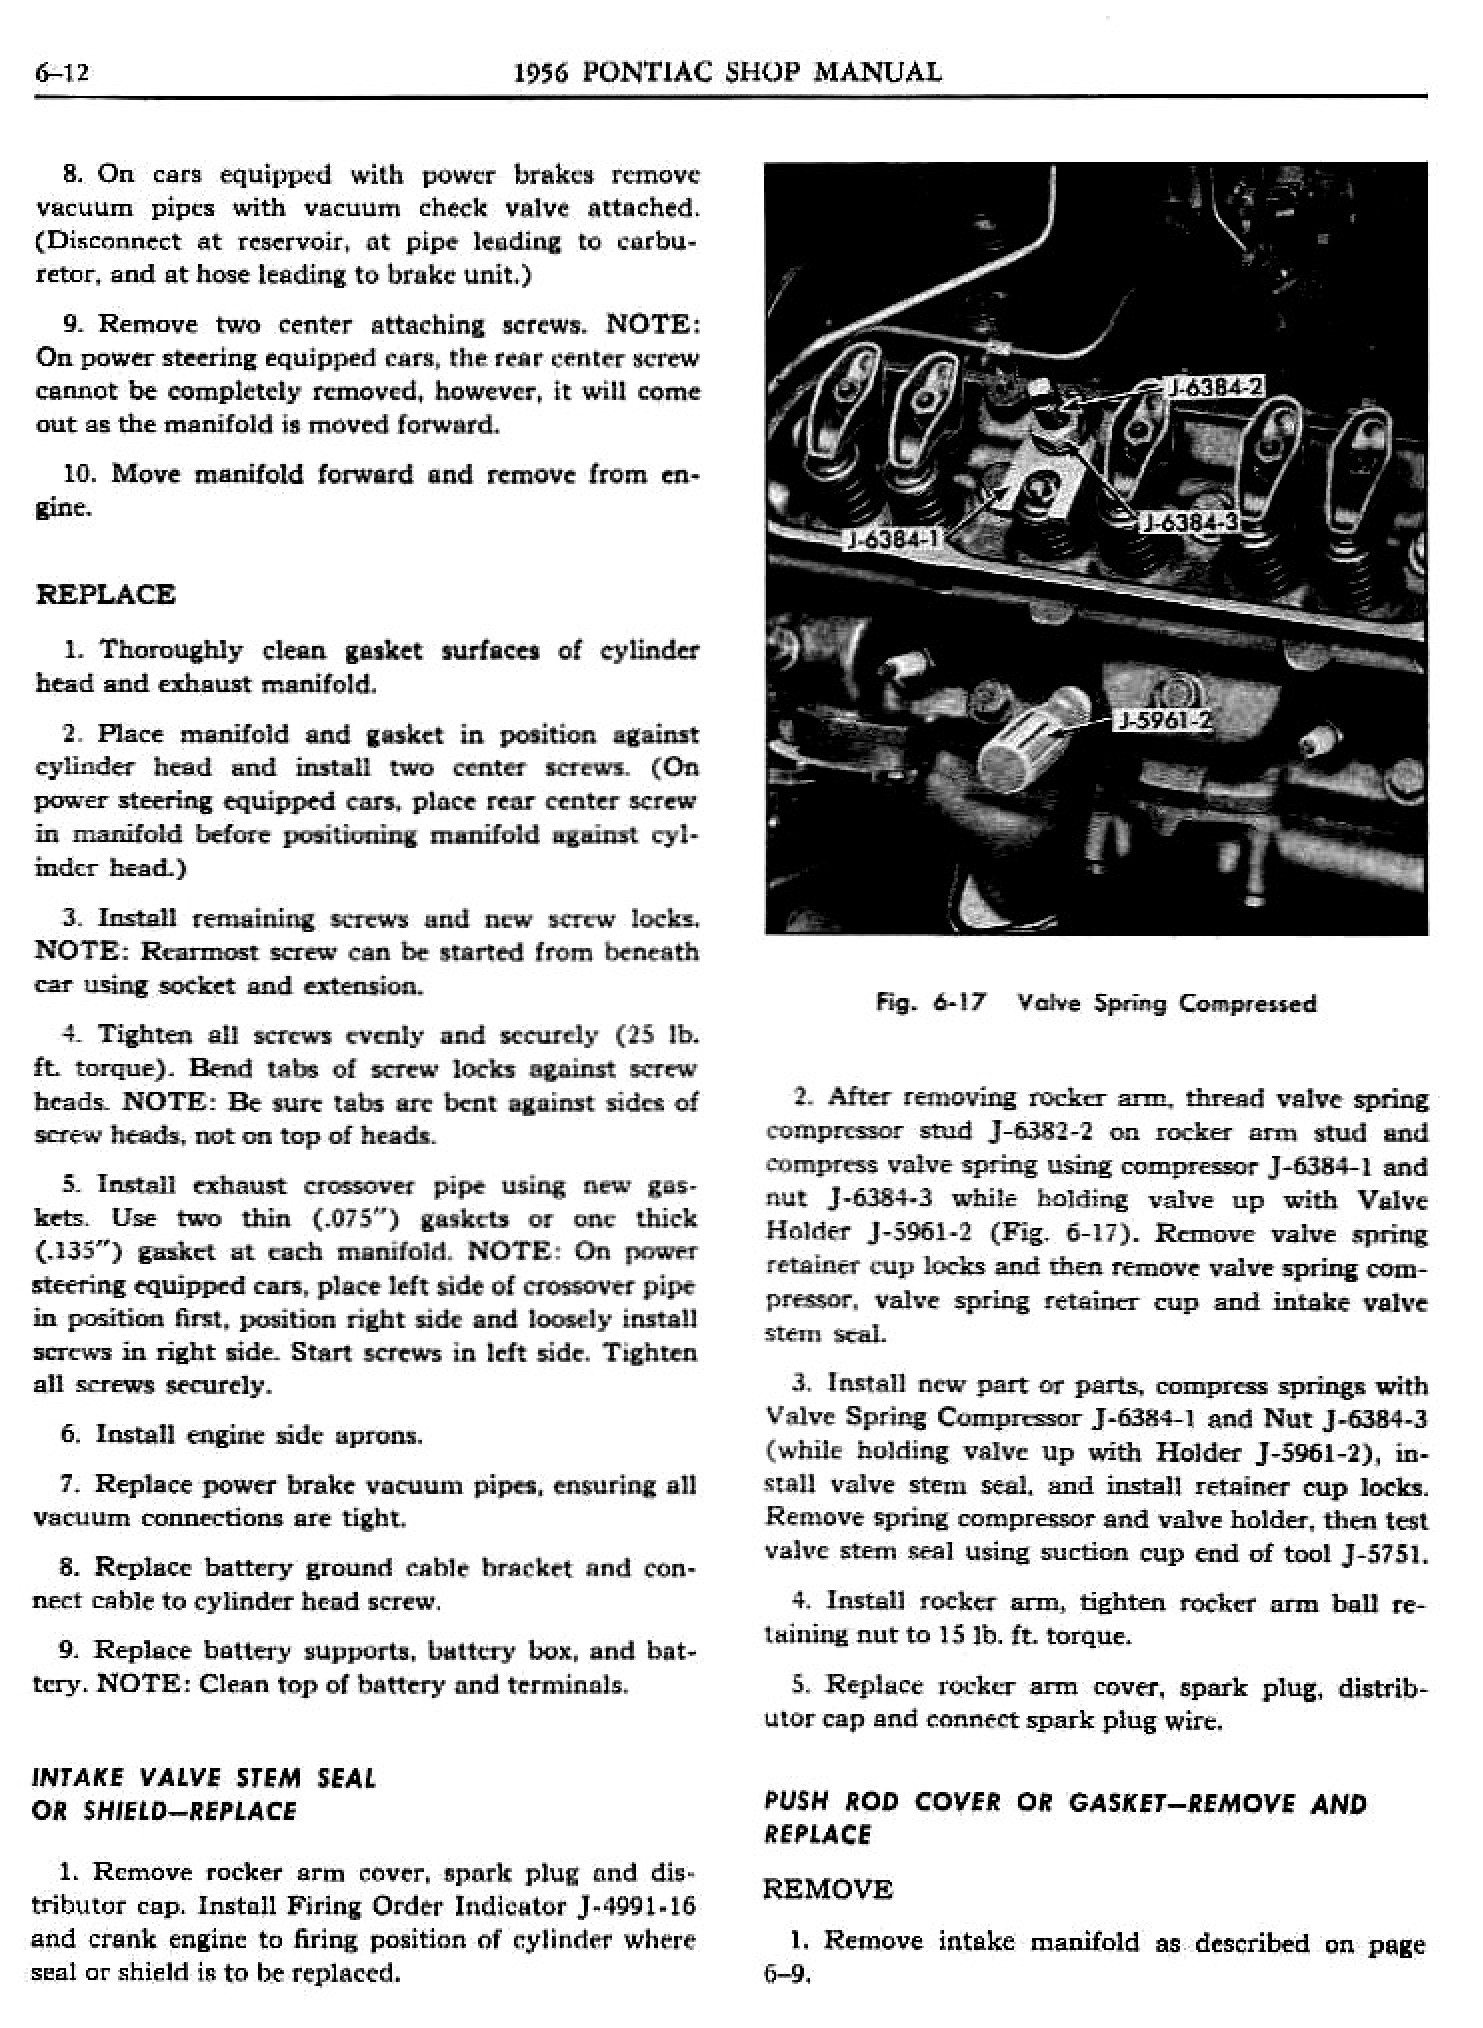 1956 Pontiac Shop Manual- Engine Page 13 of 56